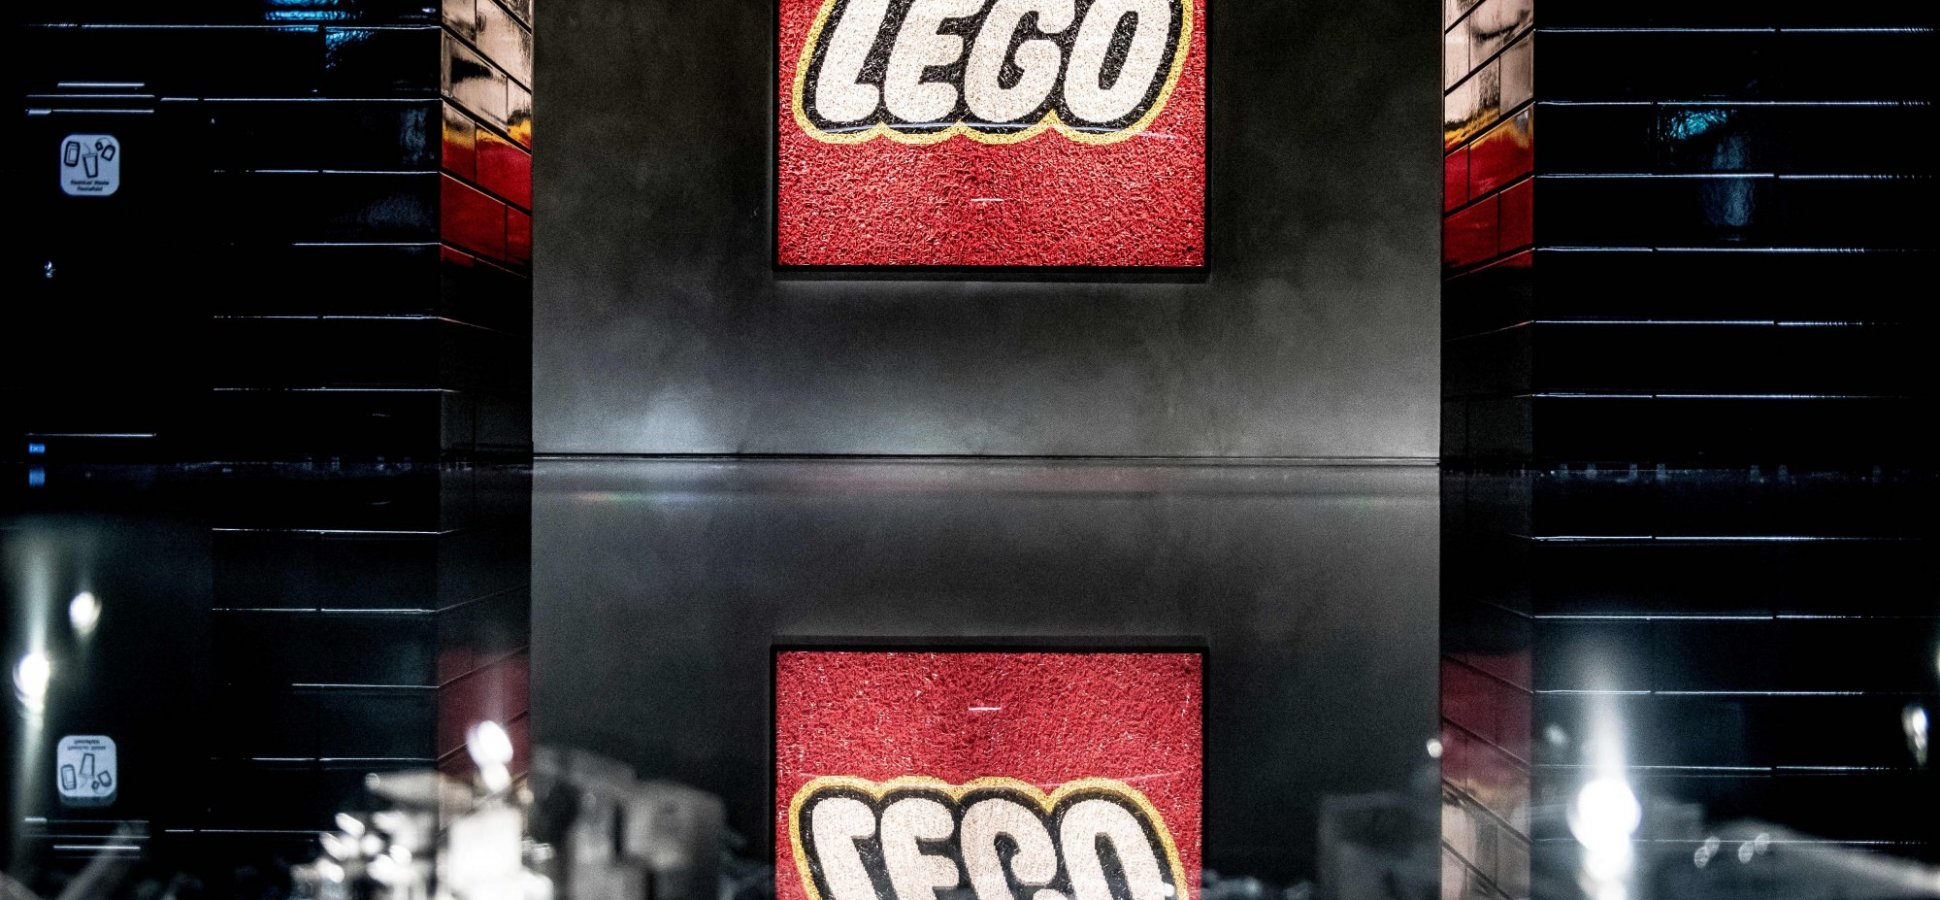 Lego Makes a Radical Announcement That Puts Other Toy Companies to Shame